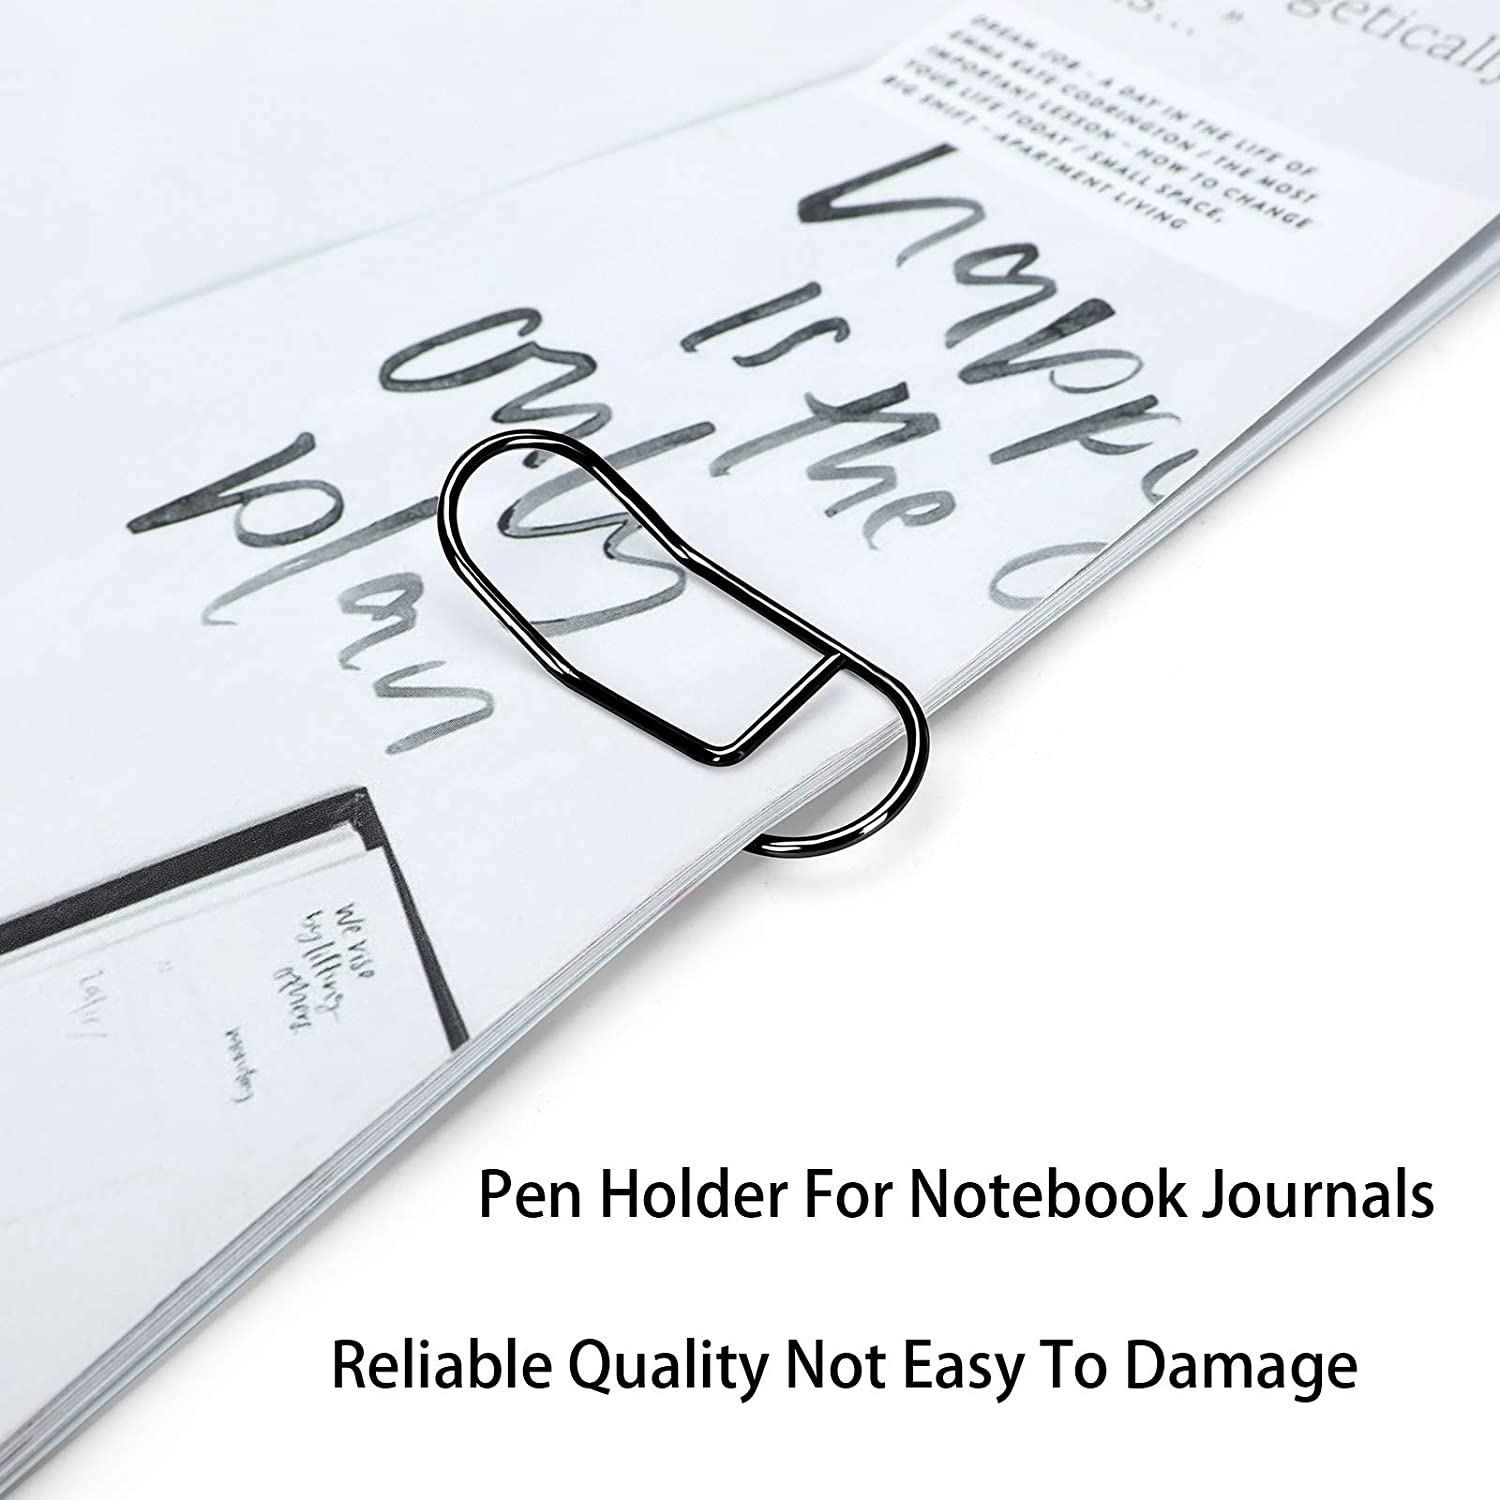 MXRS Pen Clips Black,Stainless Steel Pencil Holder for Notebook,Journals,Paper,Clipboard,Pictures-Fits Almost Any Pen Size 10 Pack